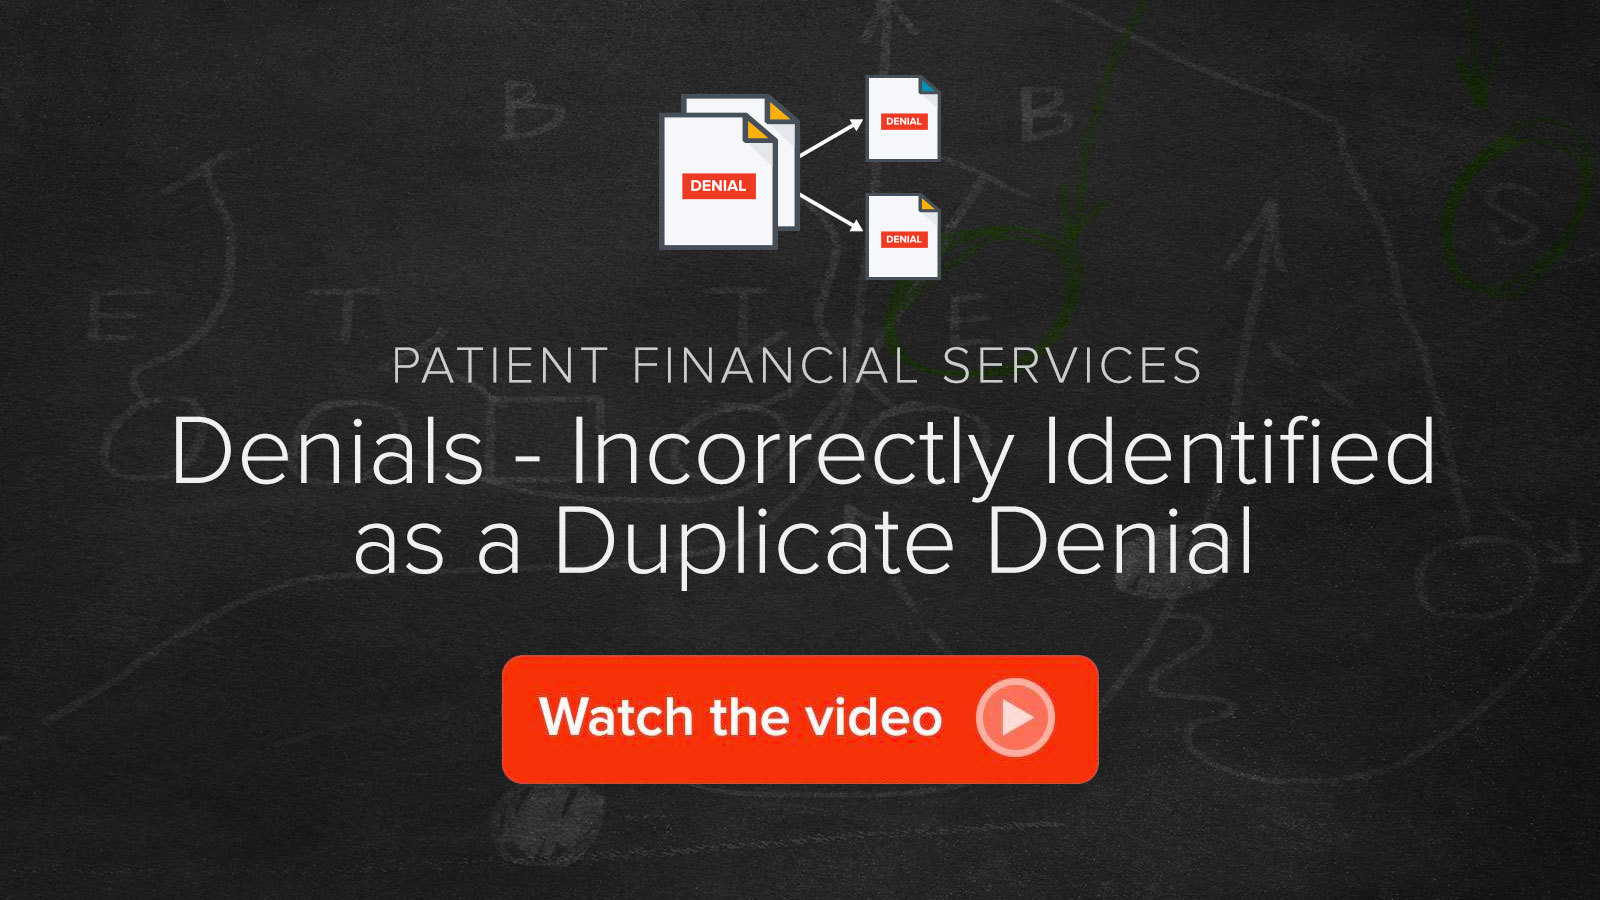 Watch the Denials - Incorrectly Identified as a Duplicate Denial video